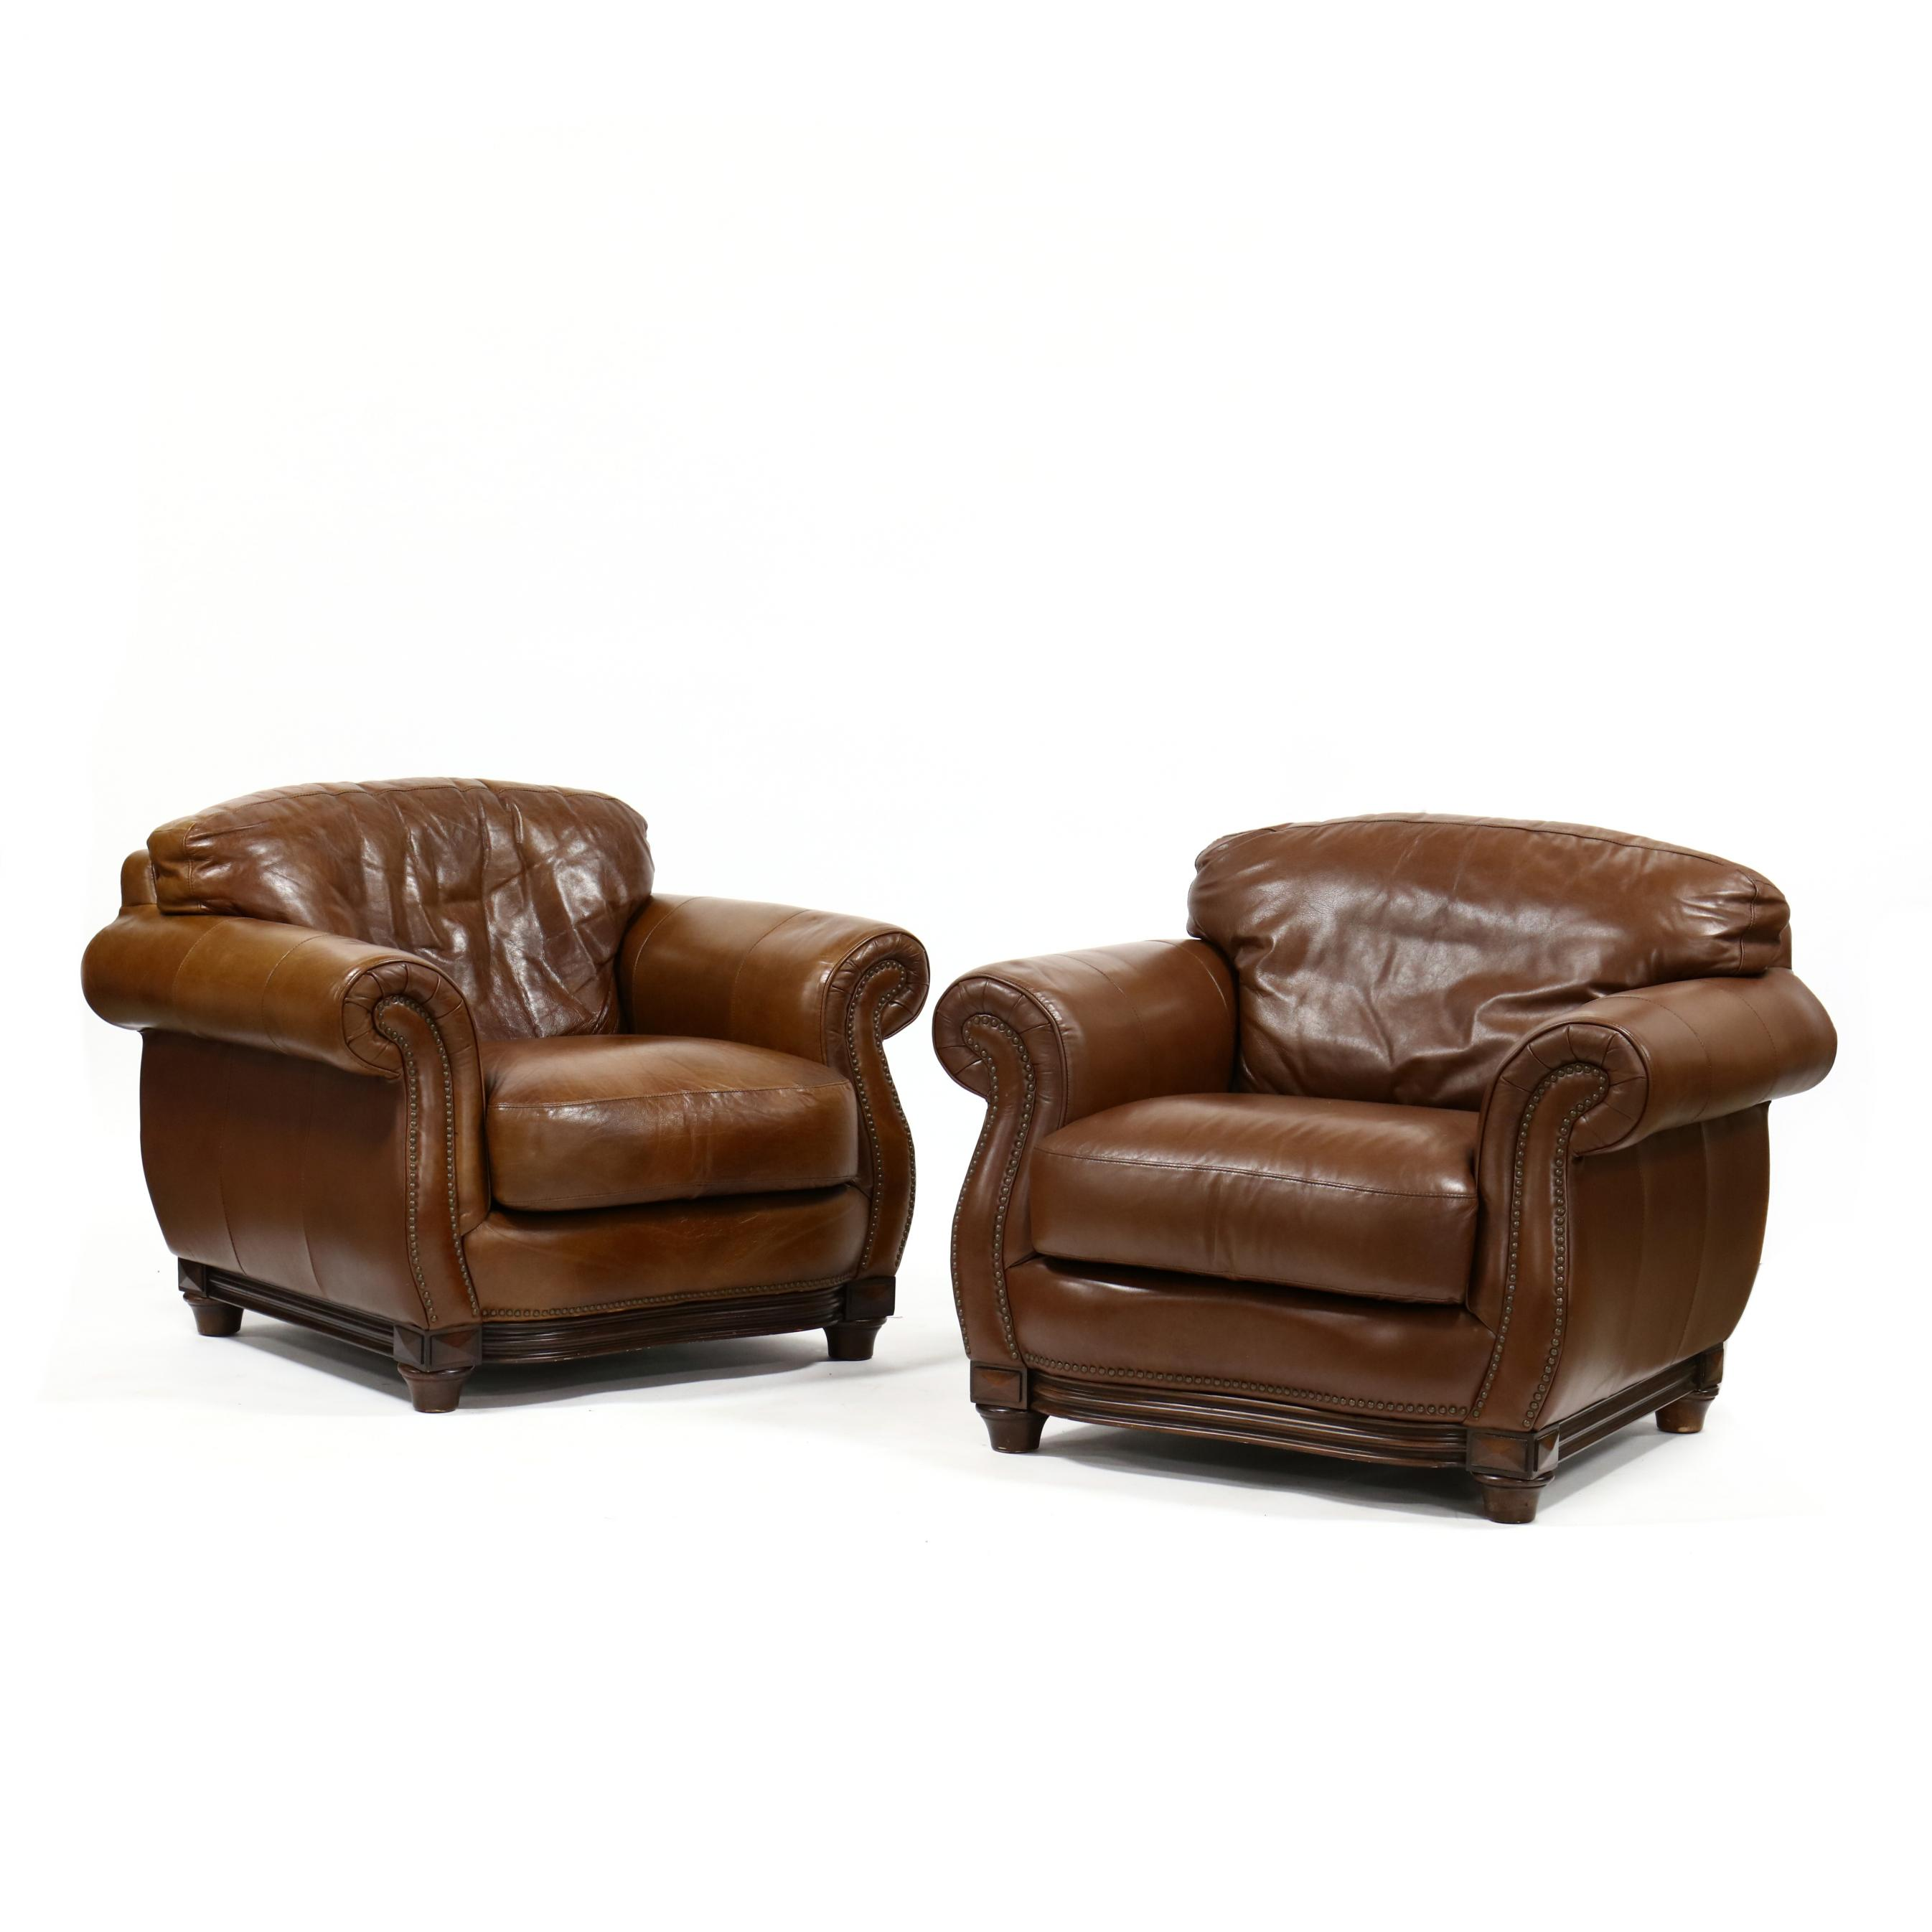 robinson-and-robinson-inc-pair-of-leather-upholstered-club-chairs